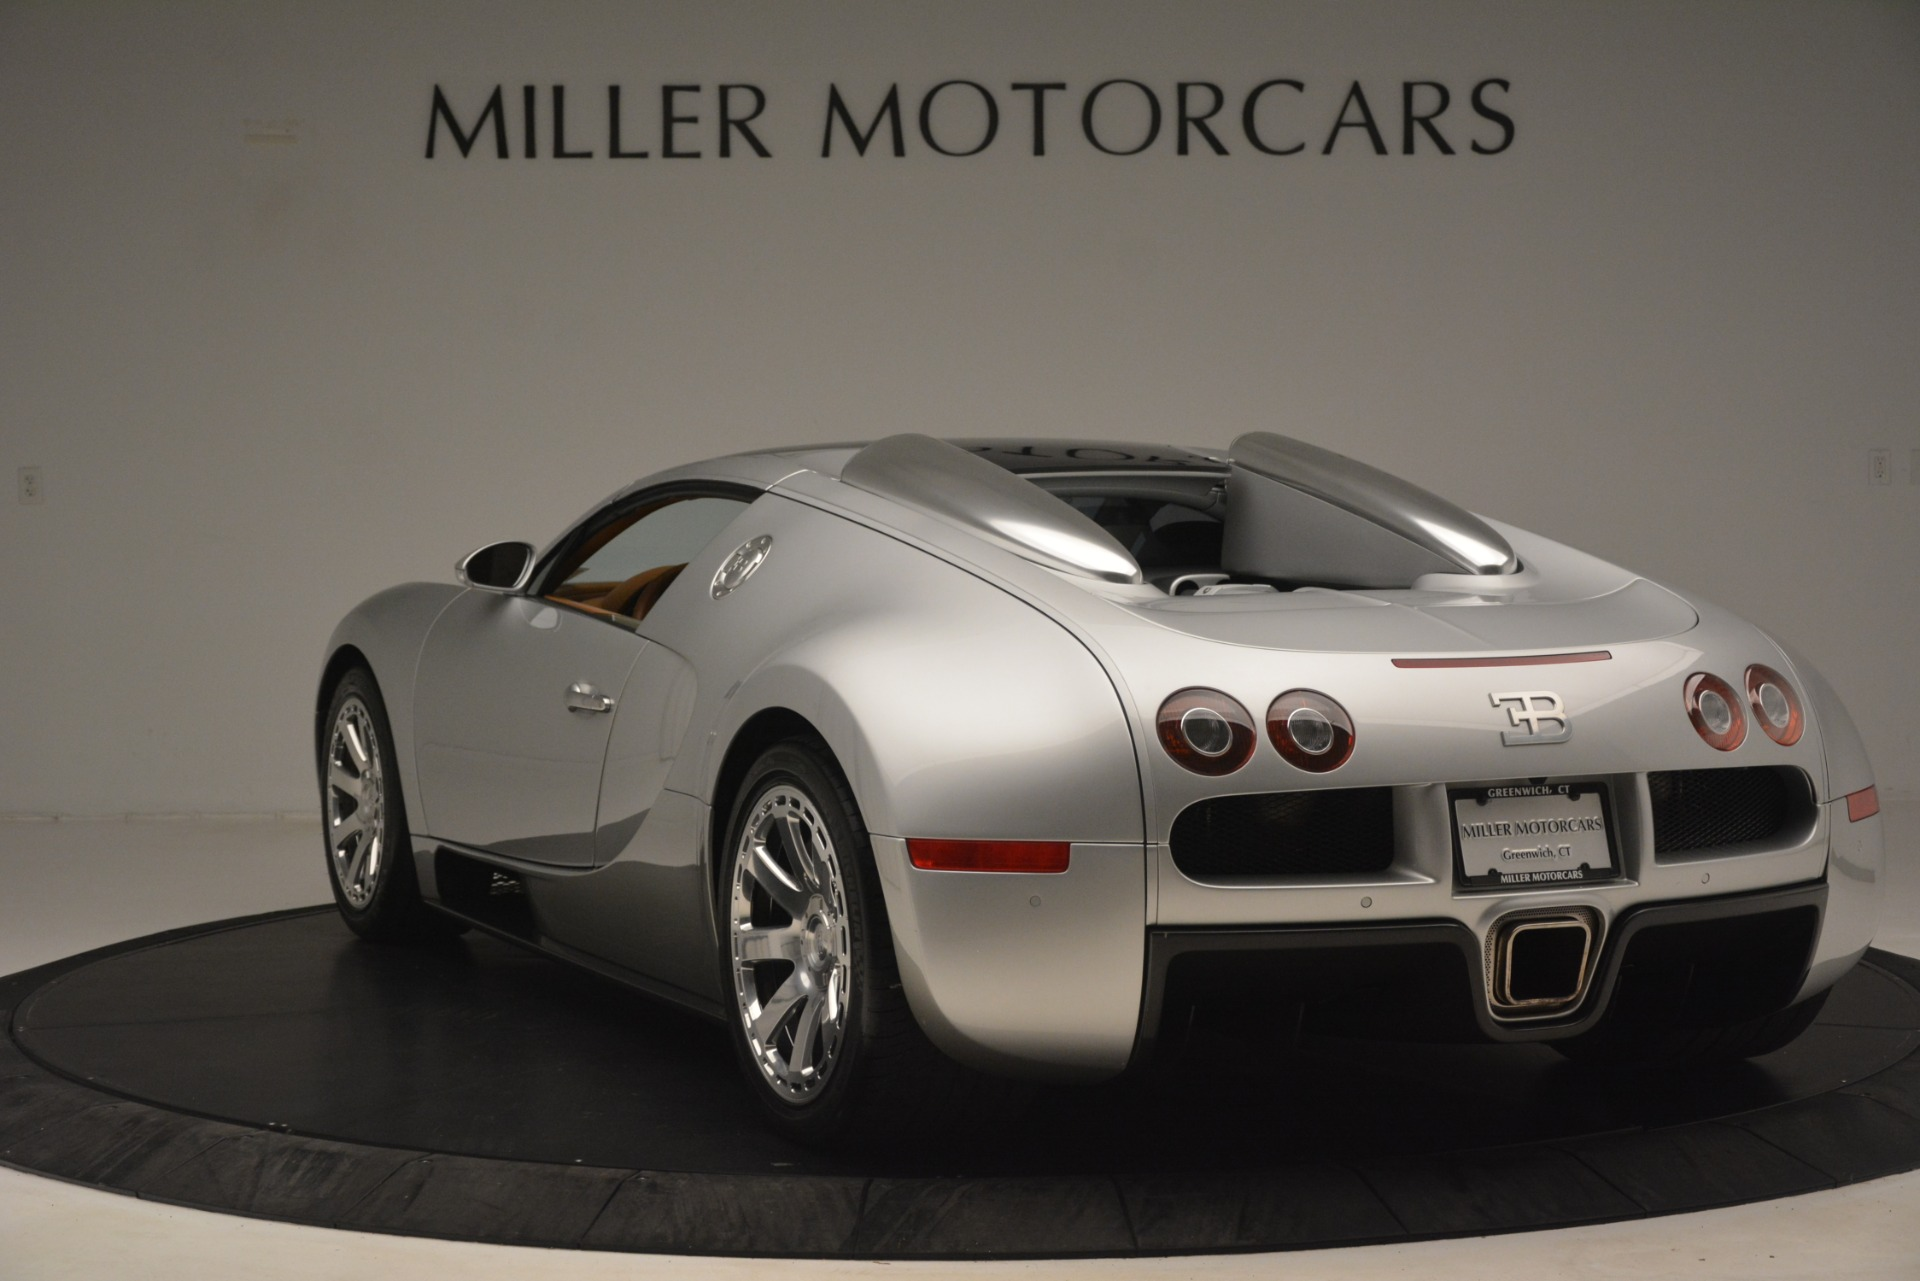 Used 2010 Bugatti Veyron 16.4 Grand Sport For Sale In Westport, CT 3159_p16